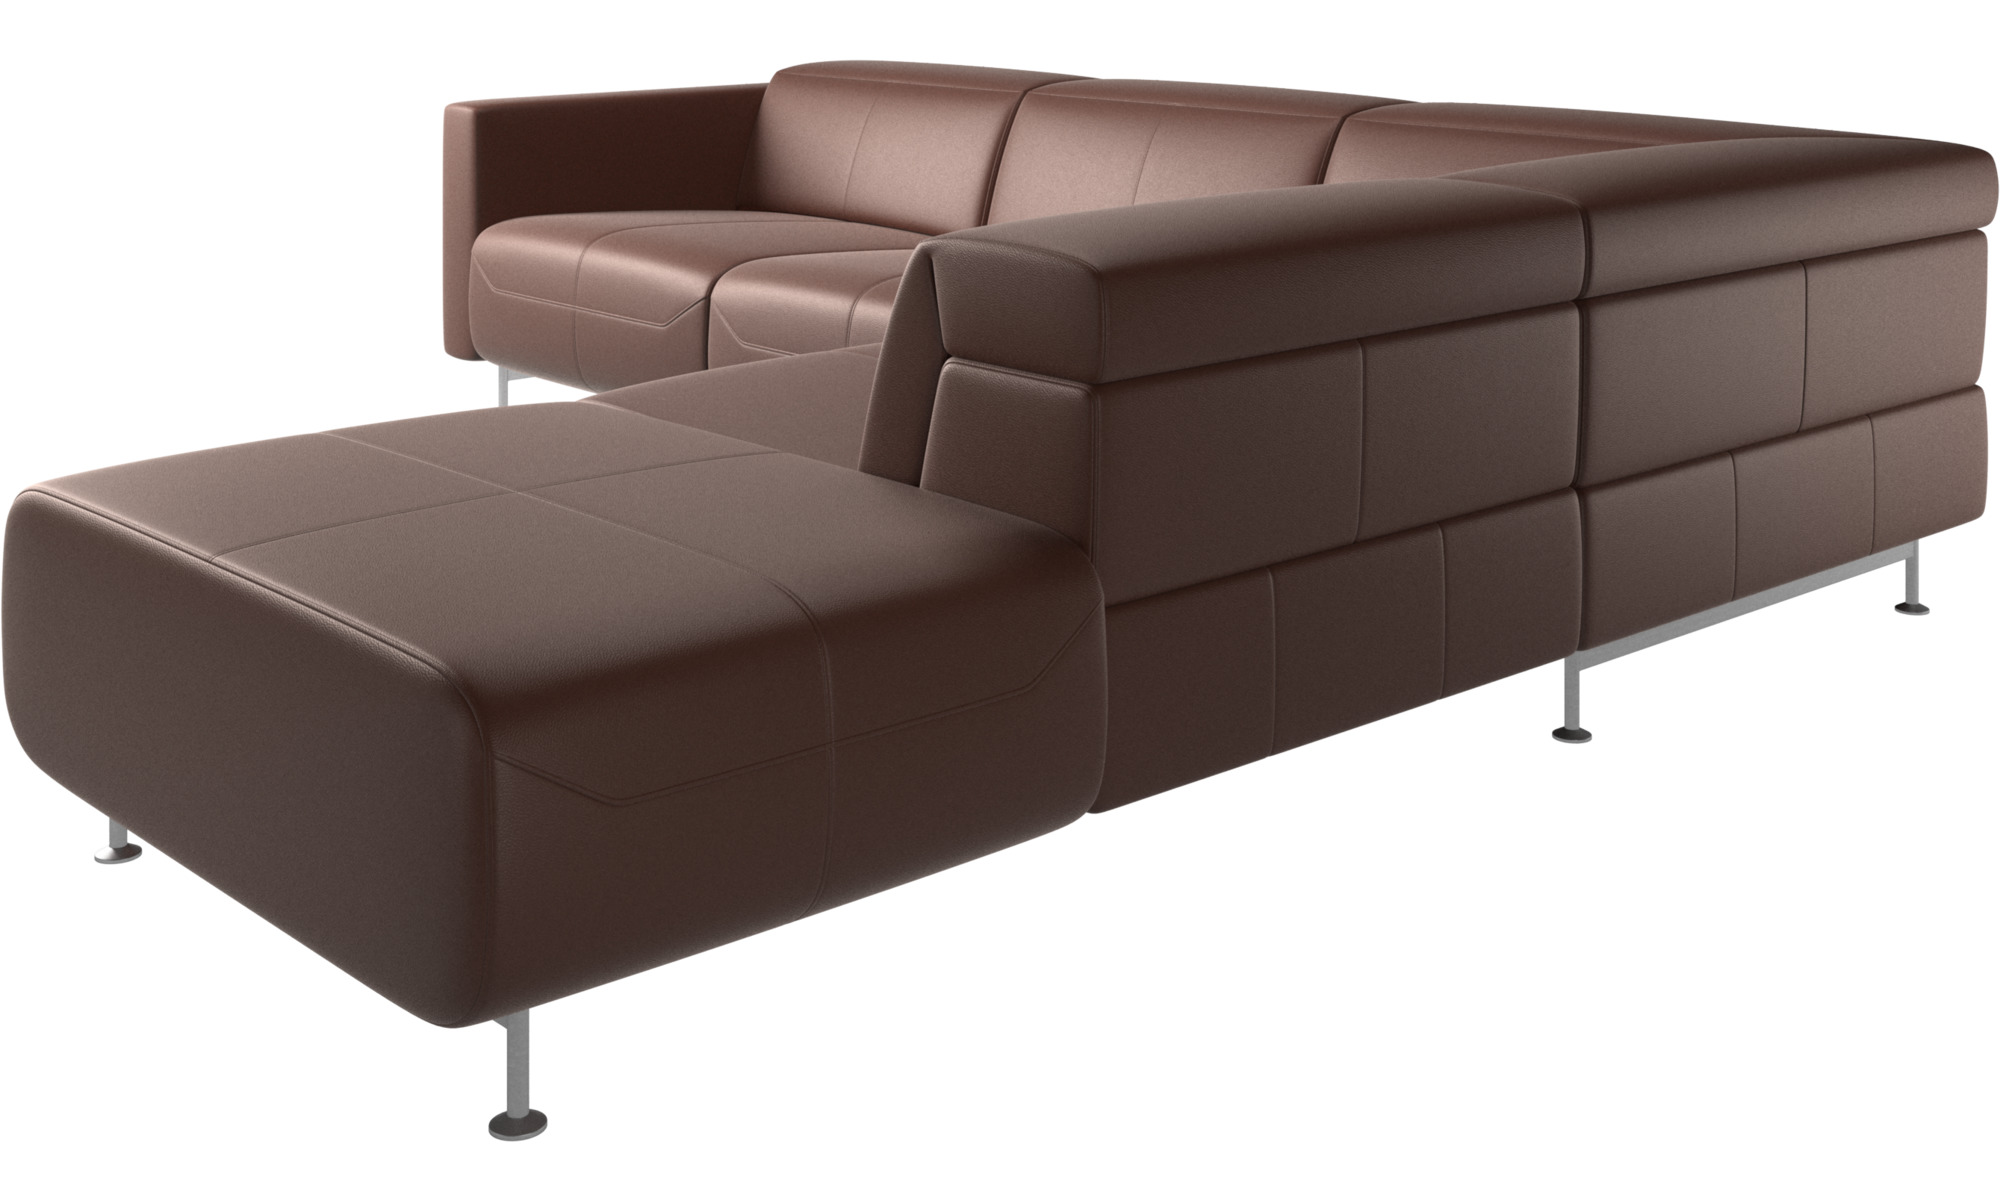 Parma reclining corner sofa with open end